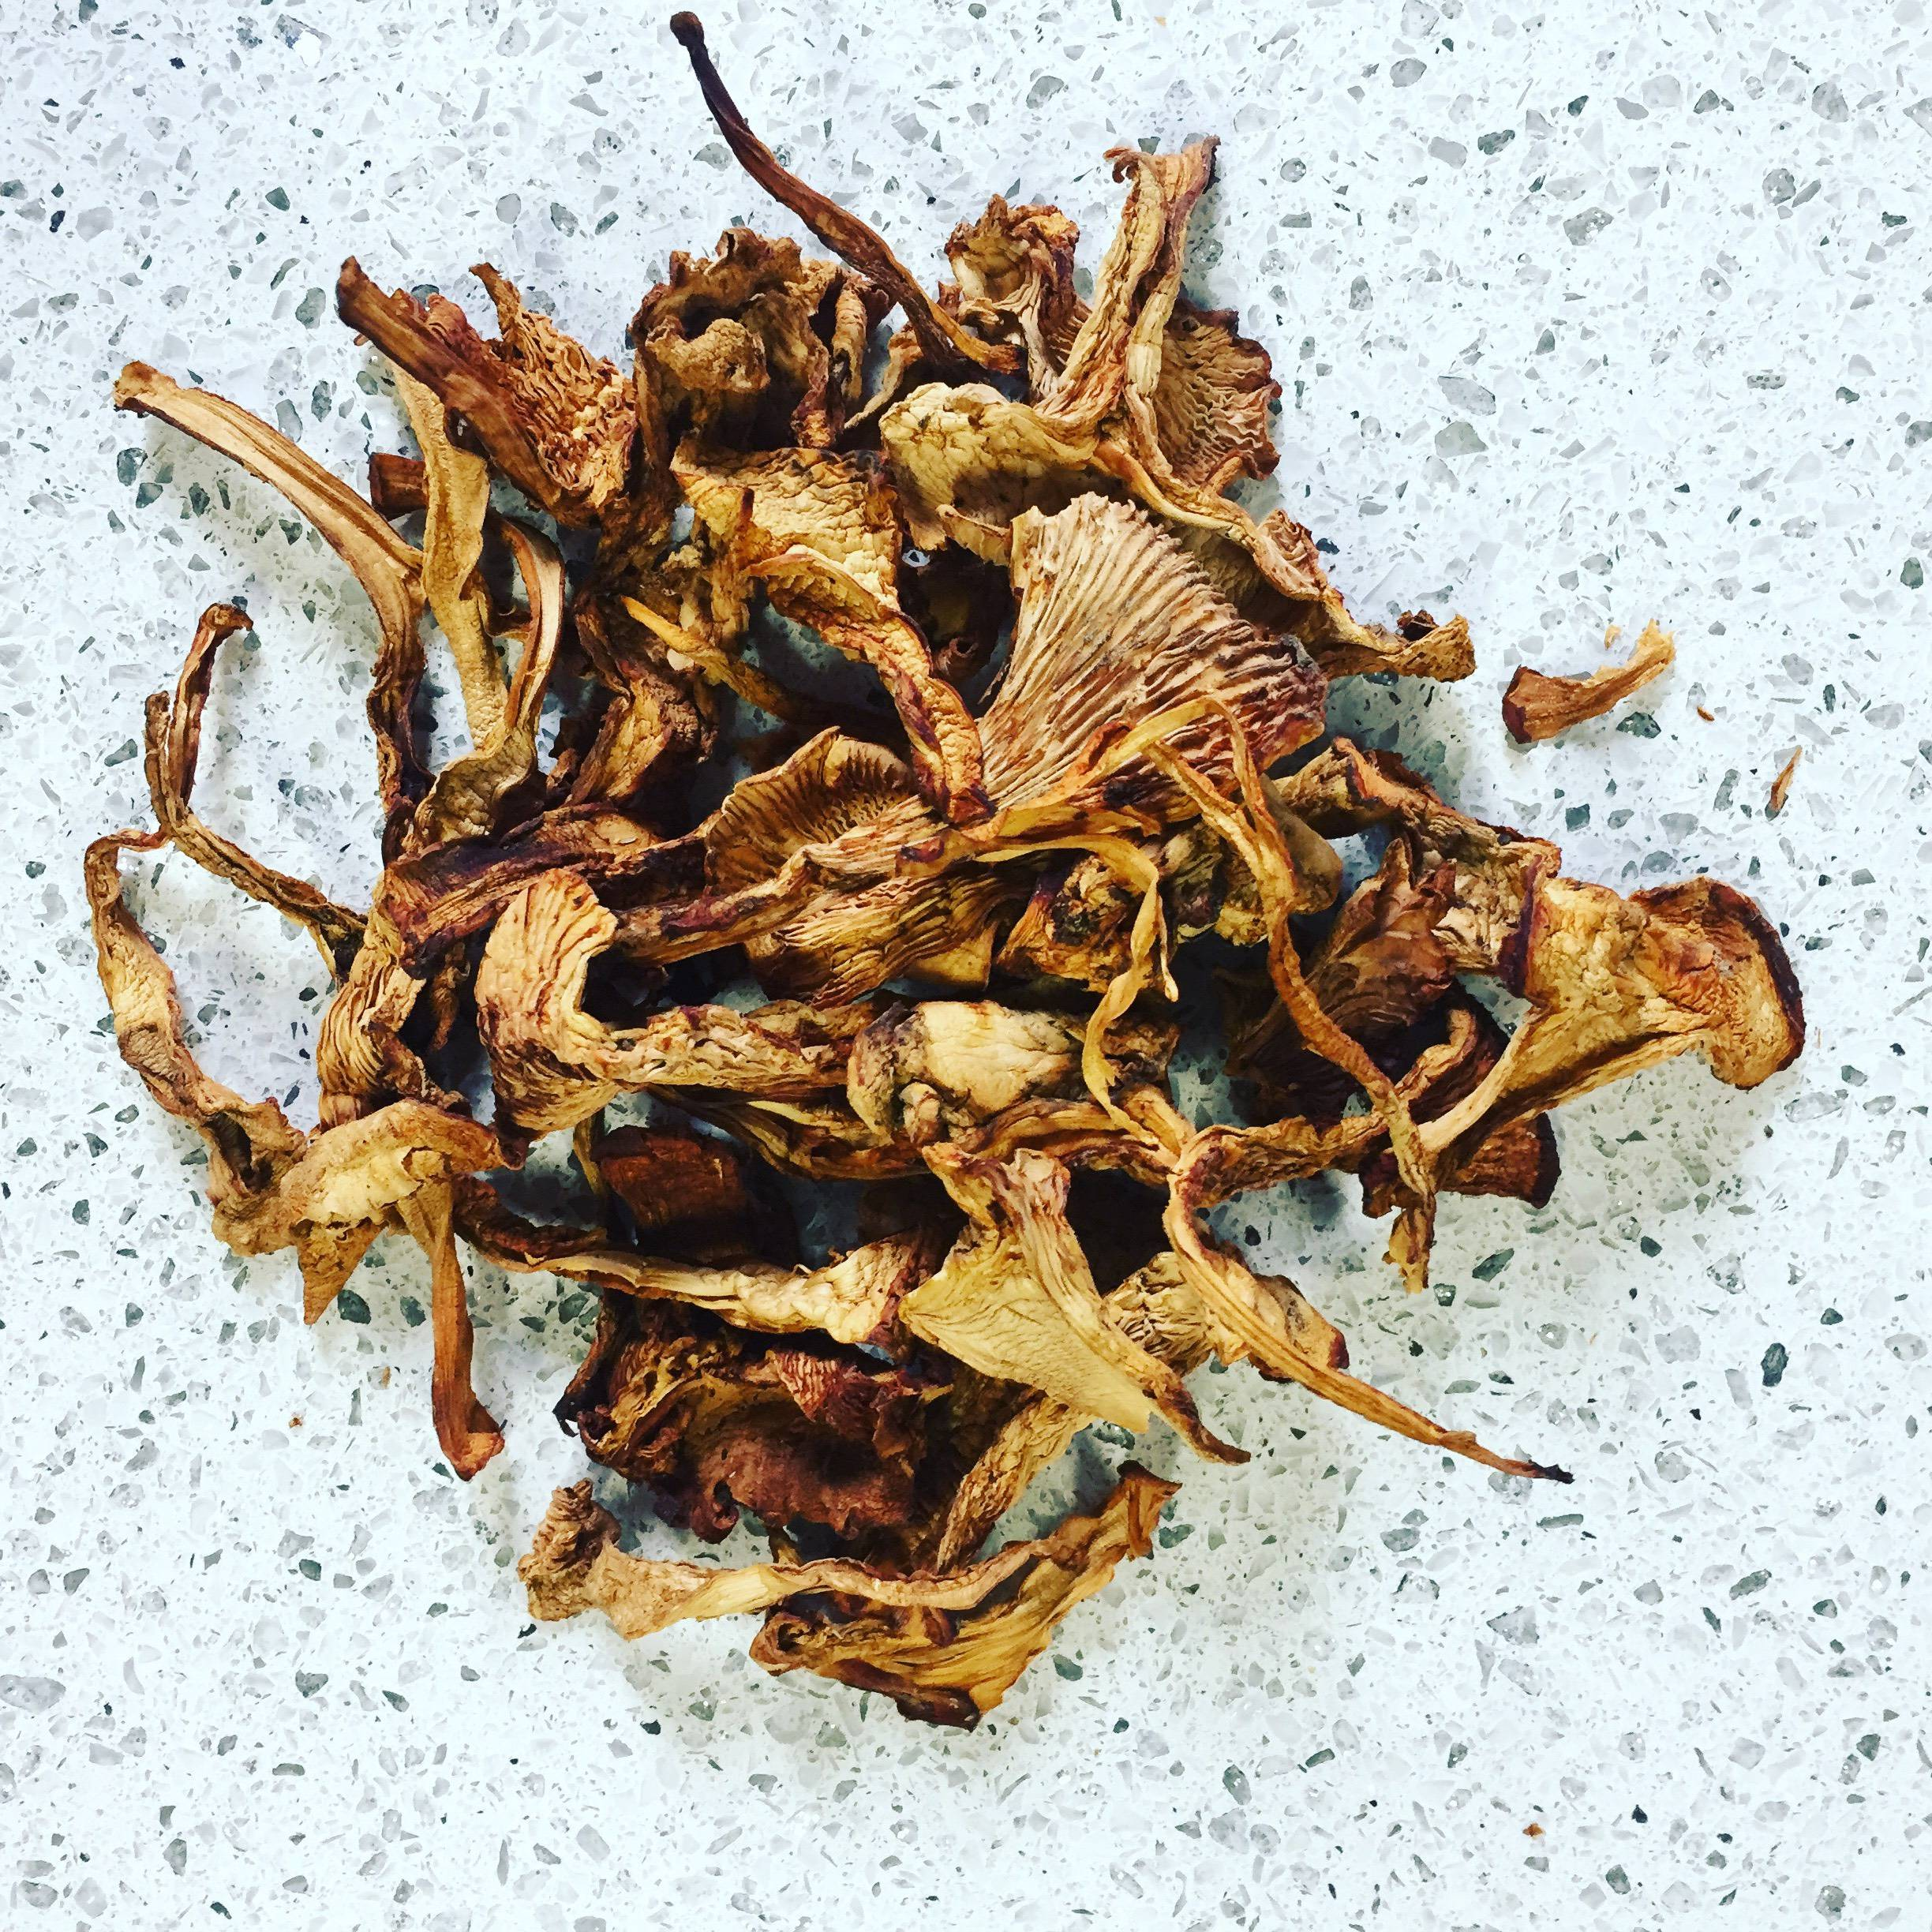 A cluster of dried Chanterelle mushrooms